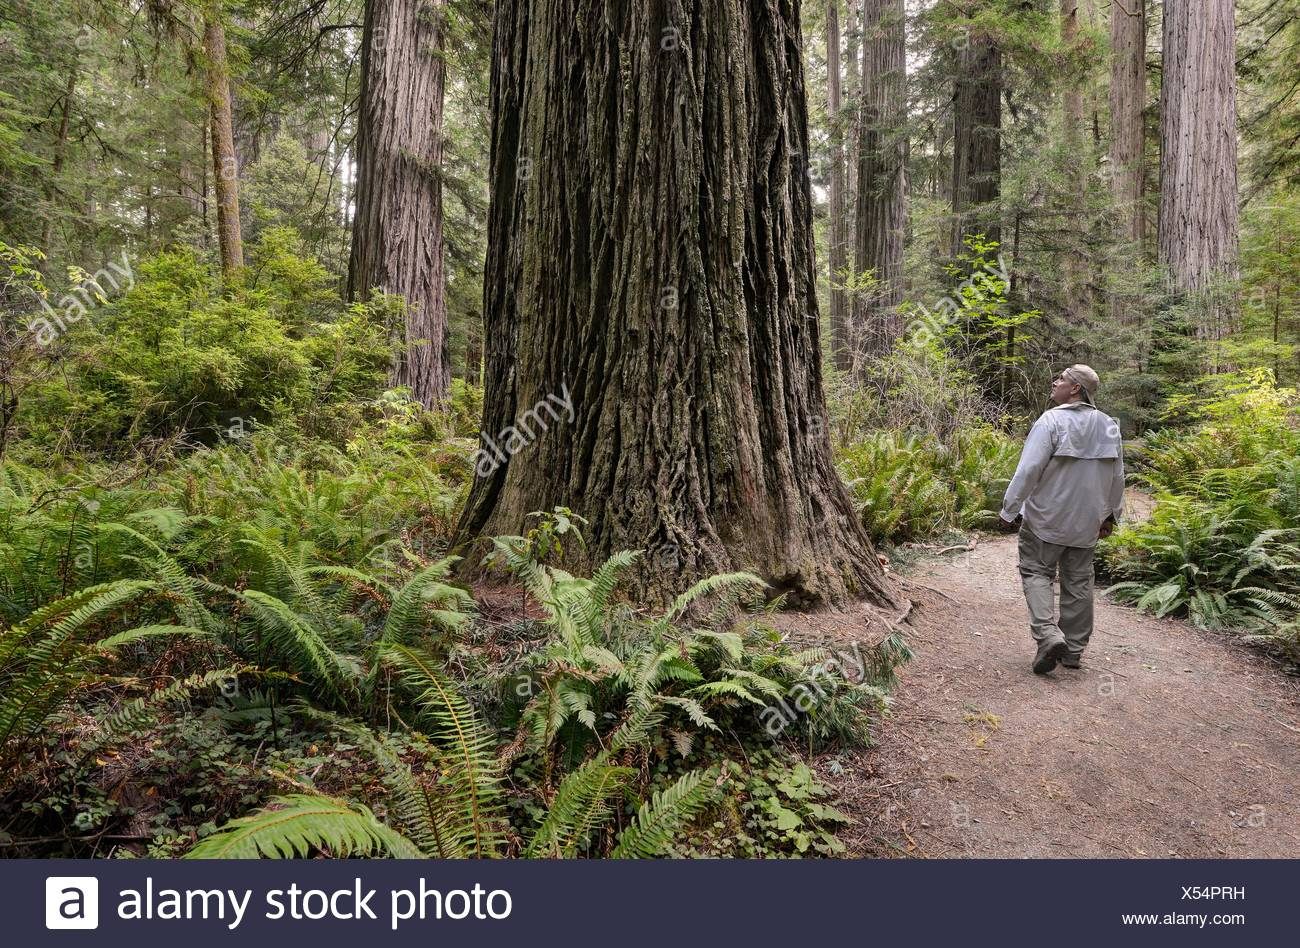 USA, California, Redwood National Park, Hiker on Templeman Grove Trail - Stock Image